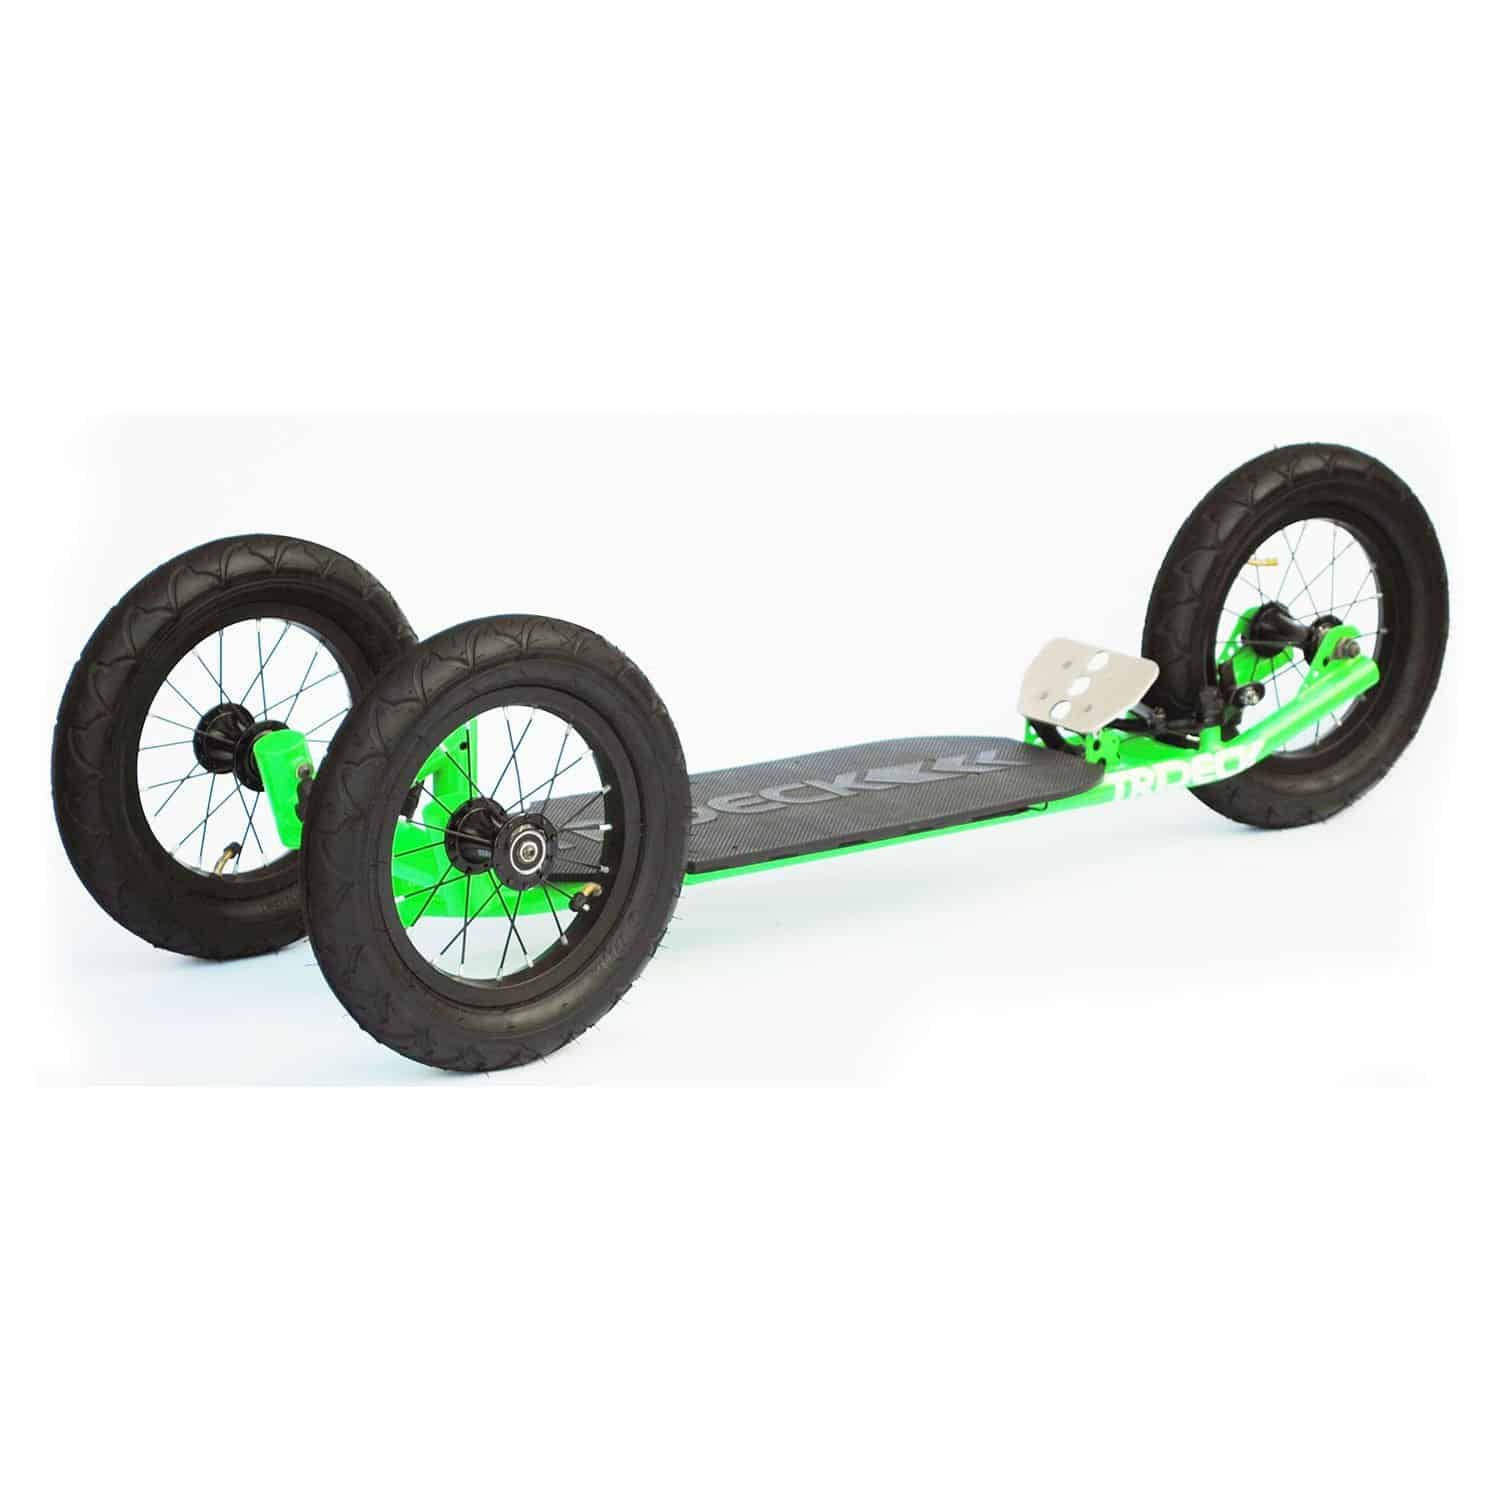 All Terrain Skateboard – TRiDECK